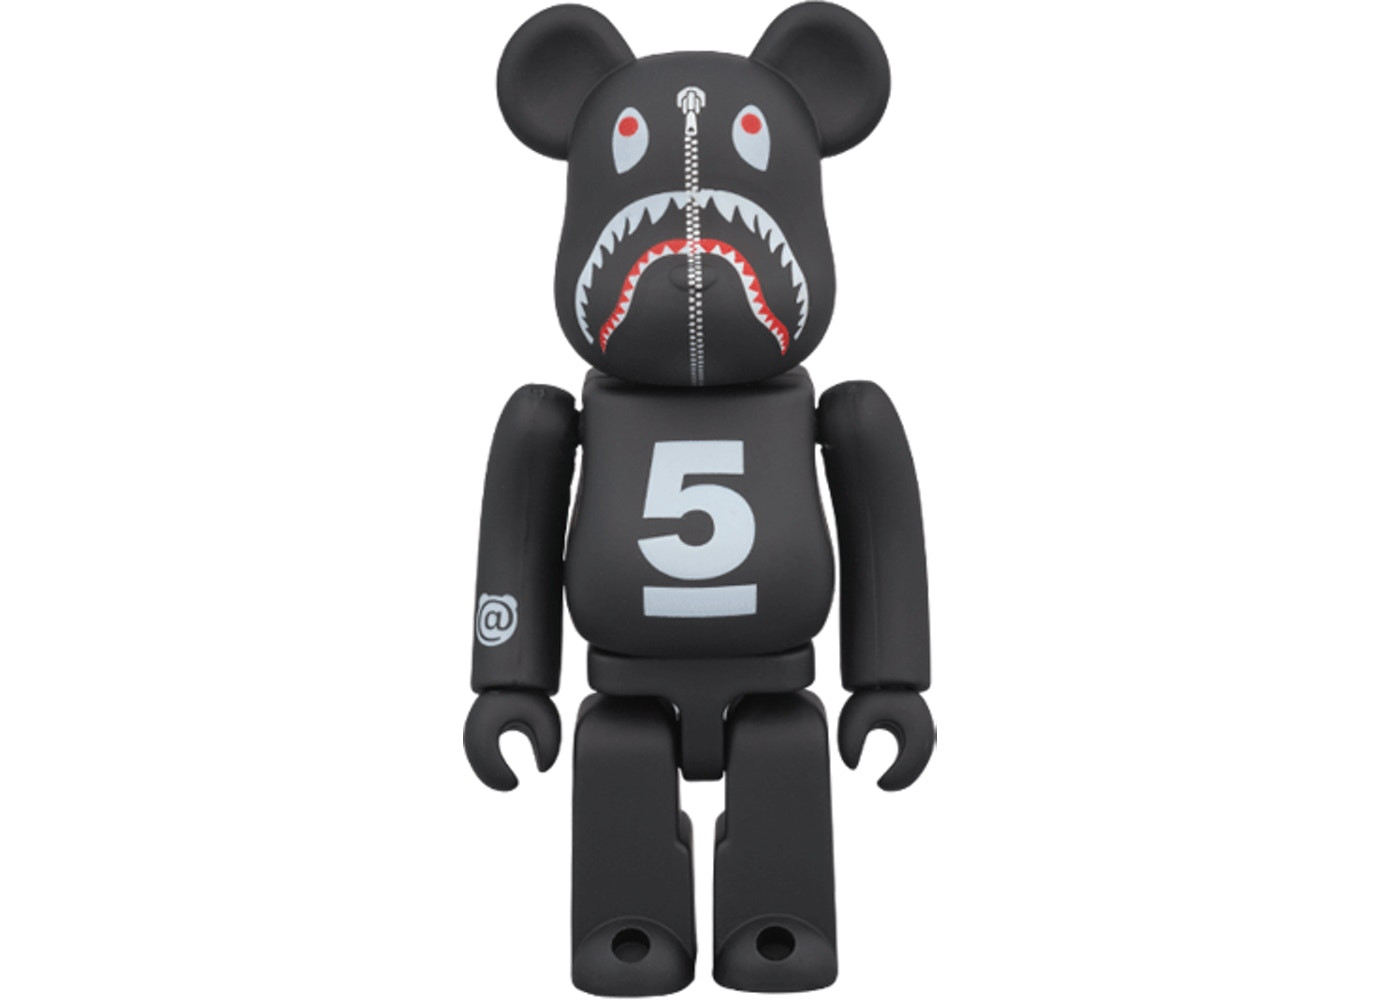 Bearbrick X Bape Dsmg 5th Shark 100 Percents Black by Stock X